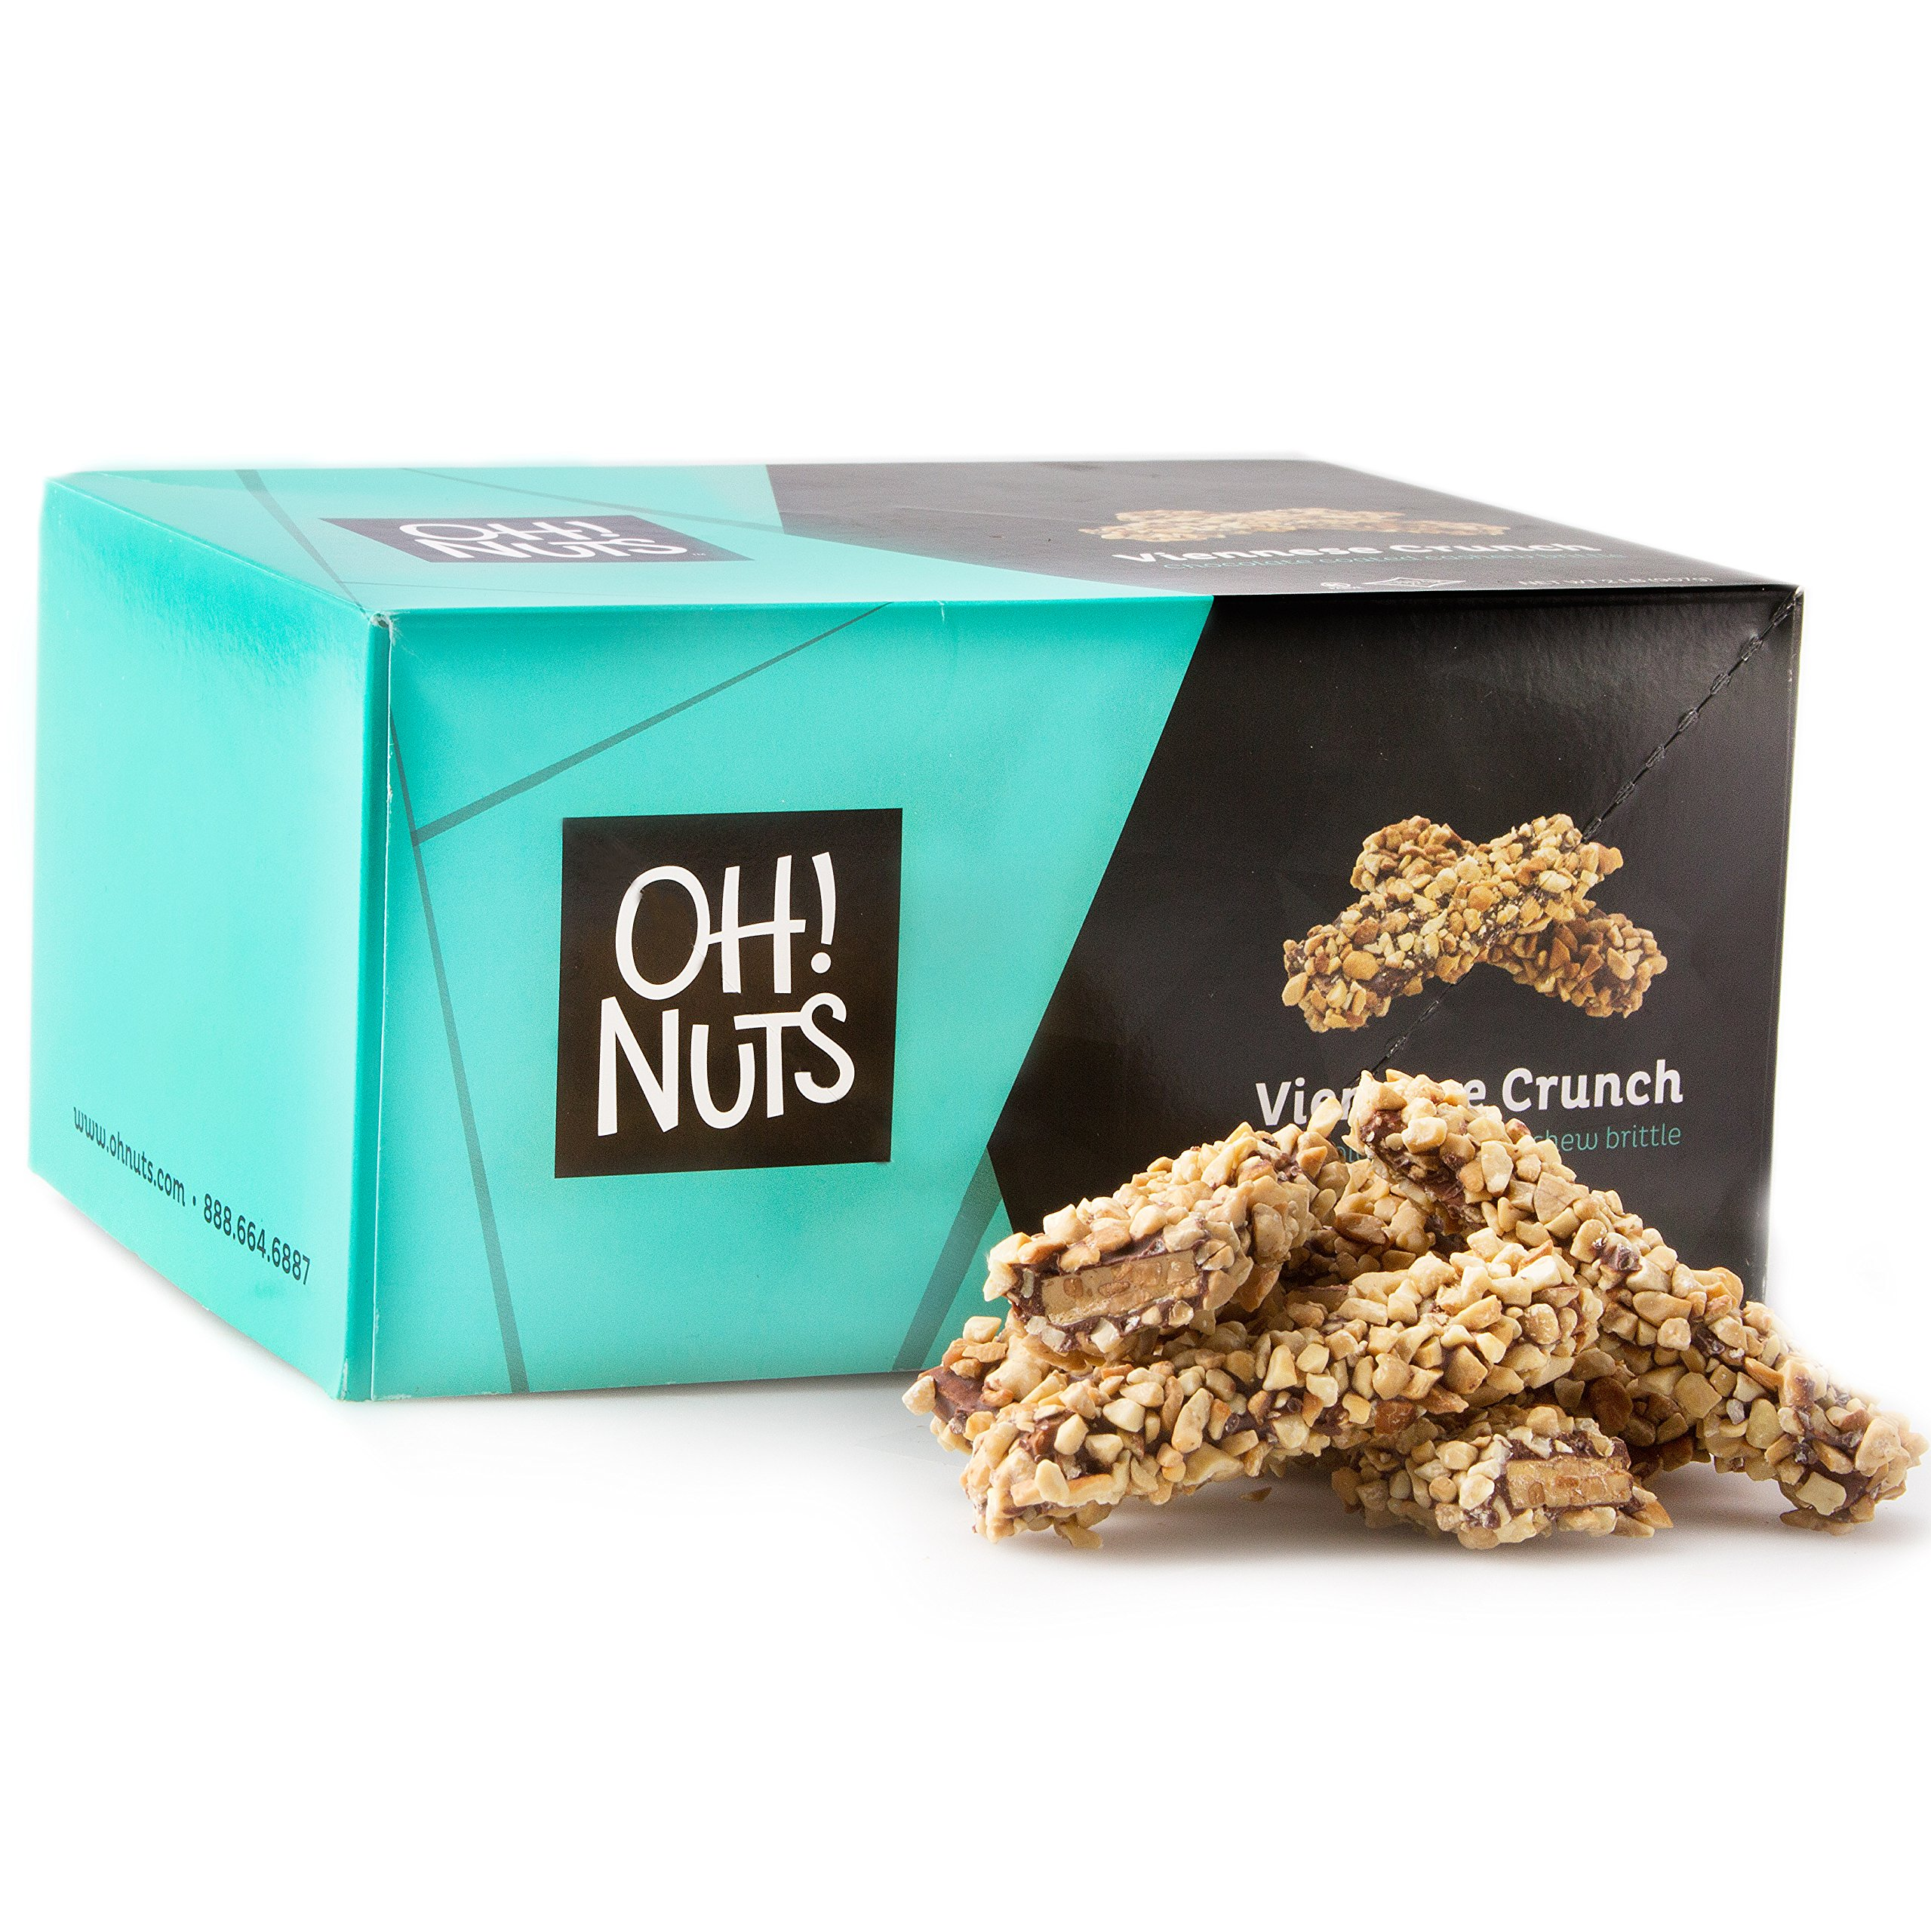 Toffee Candy Brittle Butter Cashew Nuts, Gourmet Dark Chocolate Viennese Crunch Log, Party Gift Basket (2lb Pound) - Oh! Nuts by Oh! Nuts